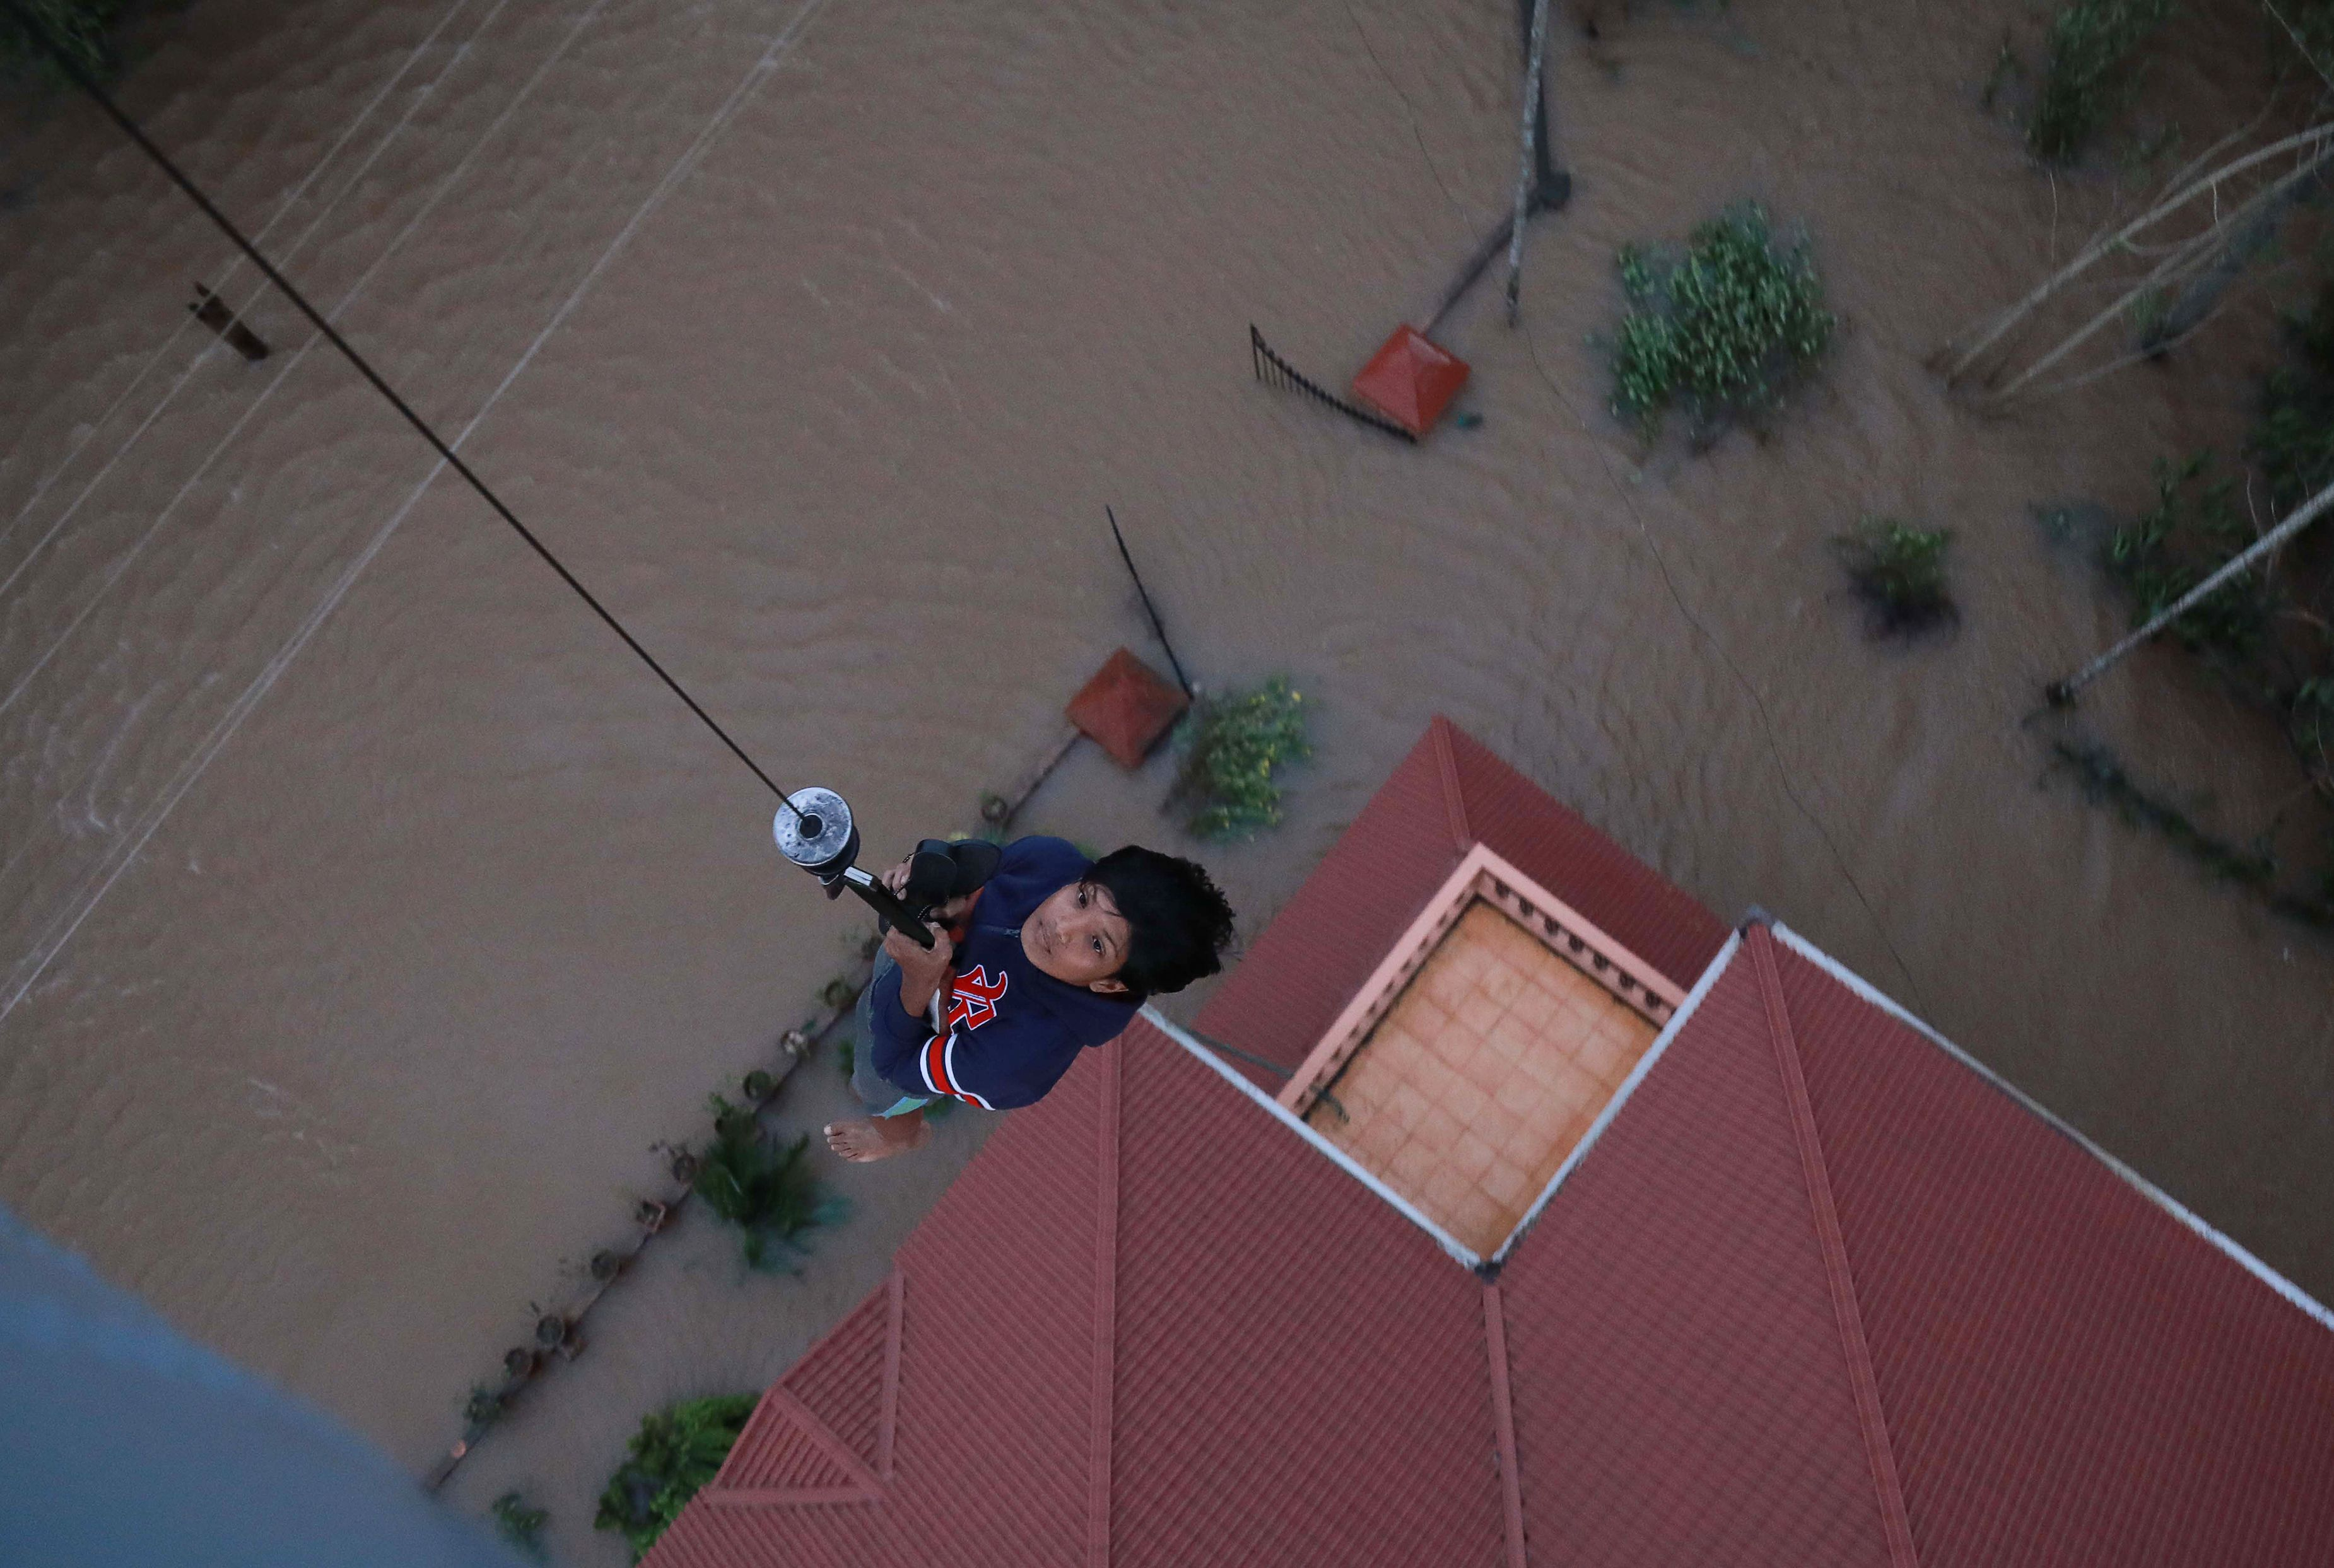 People are airlifted by Navy personnel during a rescue operation at a flooded area in Paravoor near Kochi, in the Indian state of Kerala on Aug. 18, 2018.